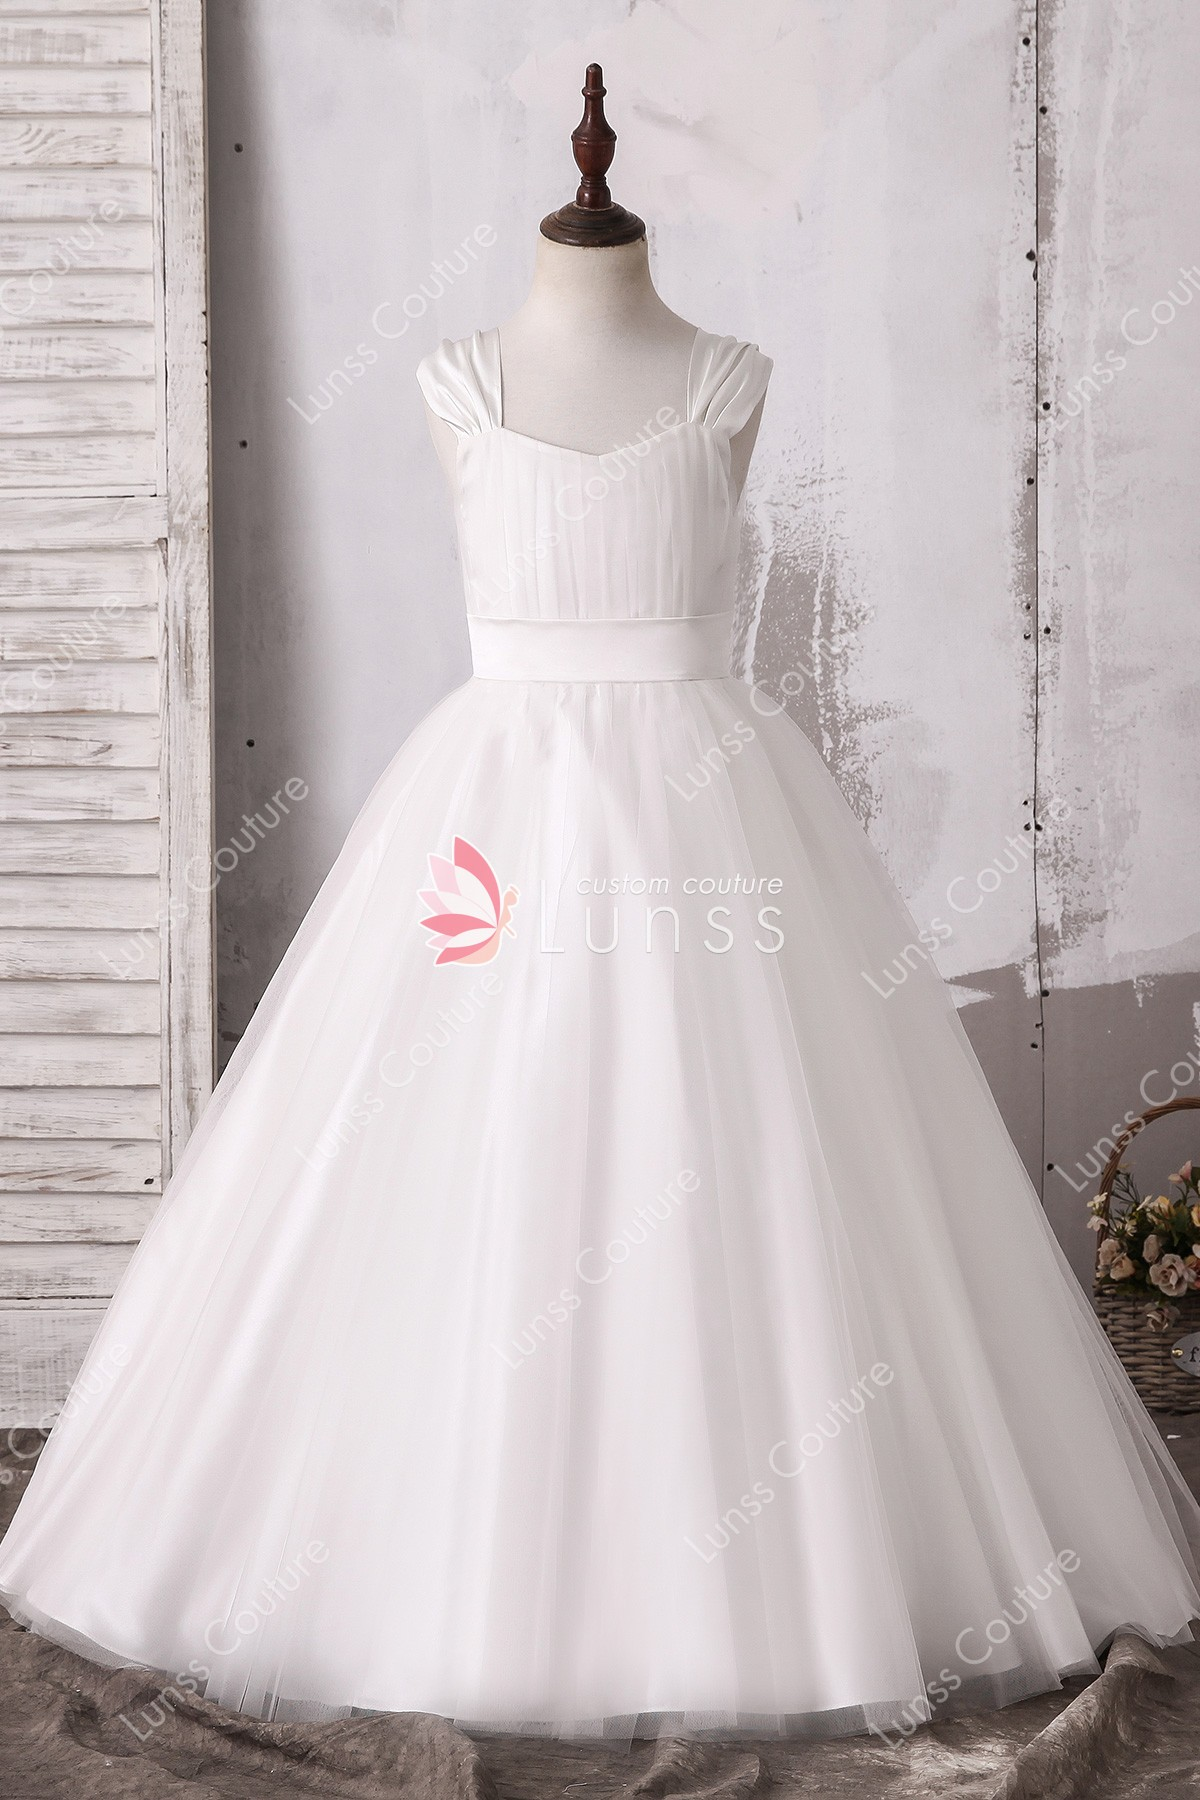 Cute Ivory Ballgown Tulle Satin Flower Girl Dress Lunss Couture